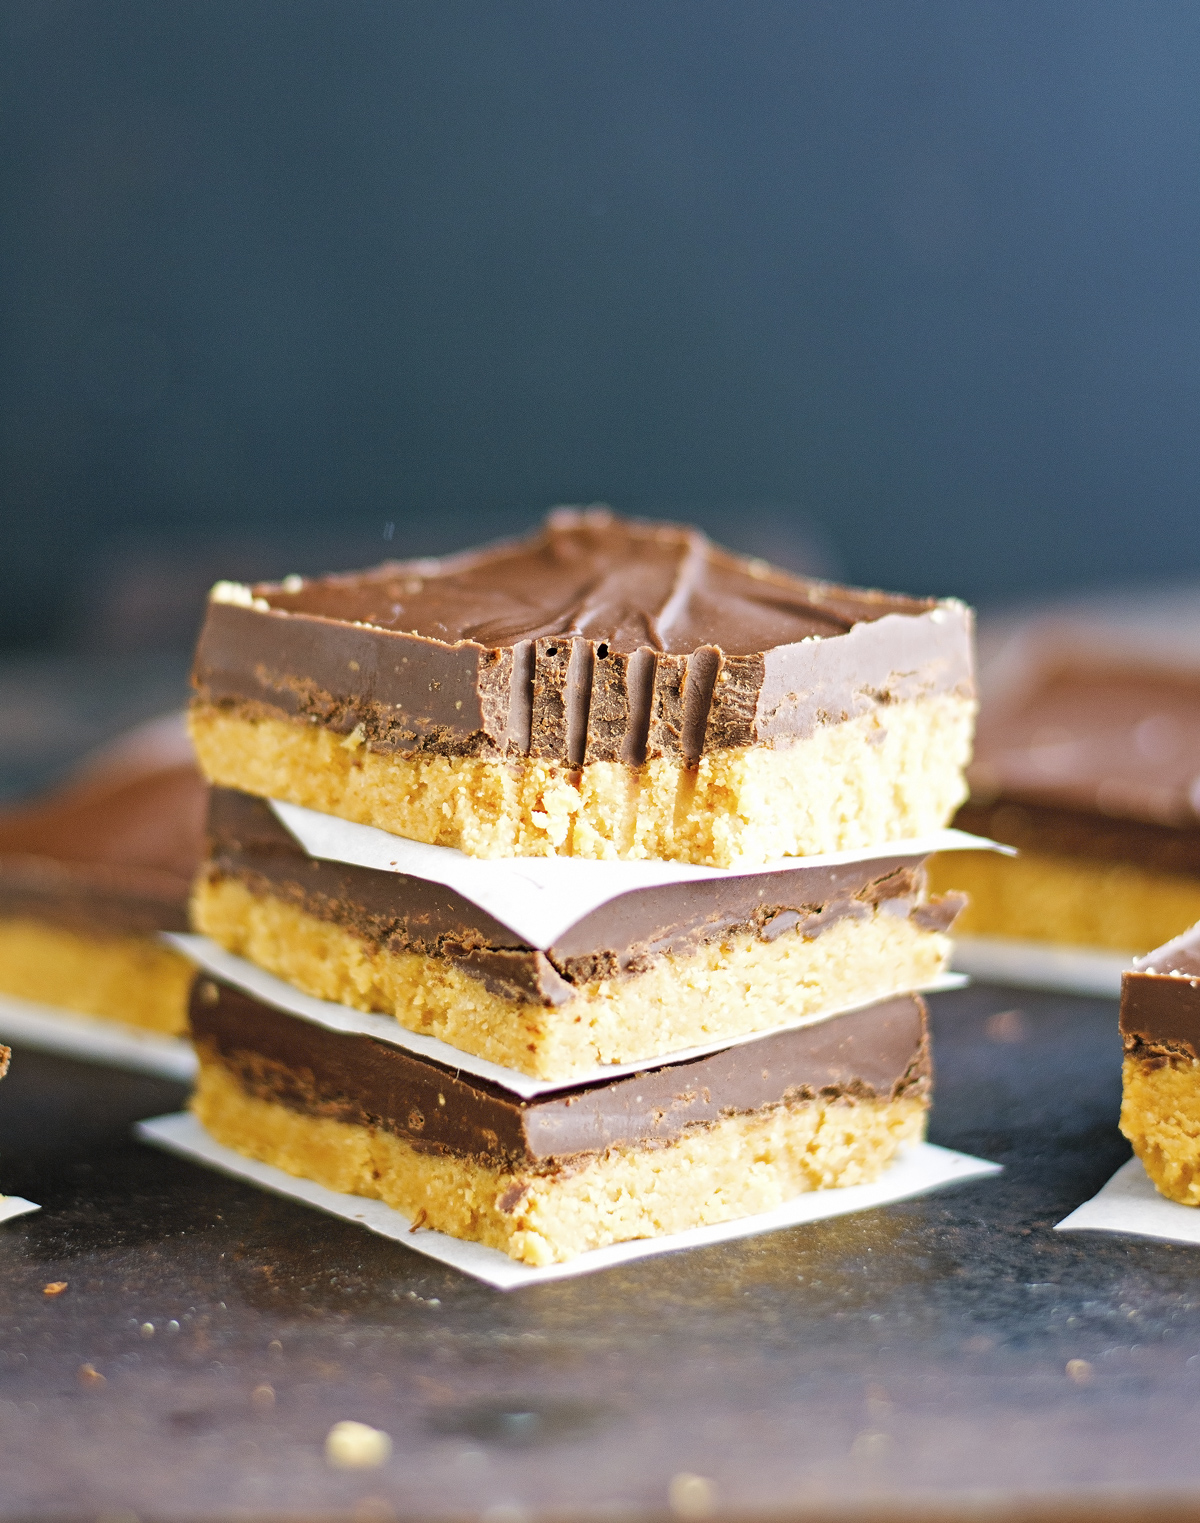 4-Ingredient Chocolate Peanut Butter Bars